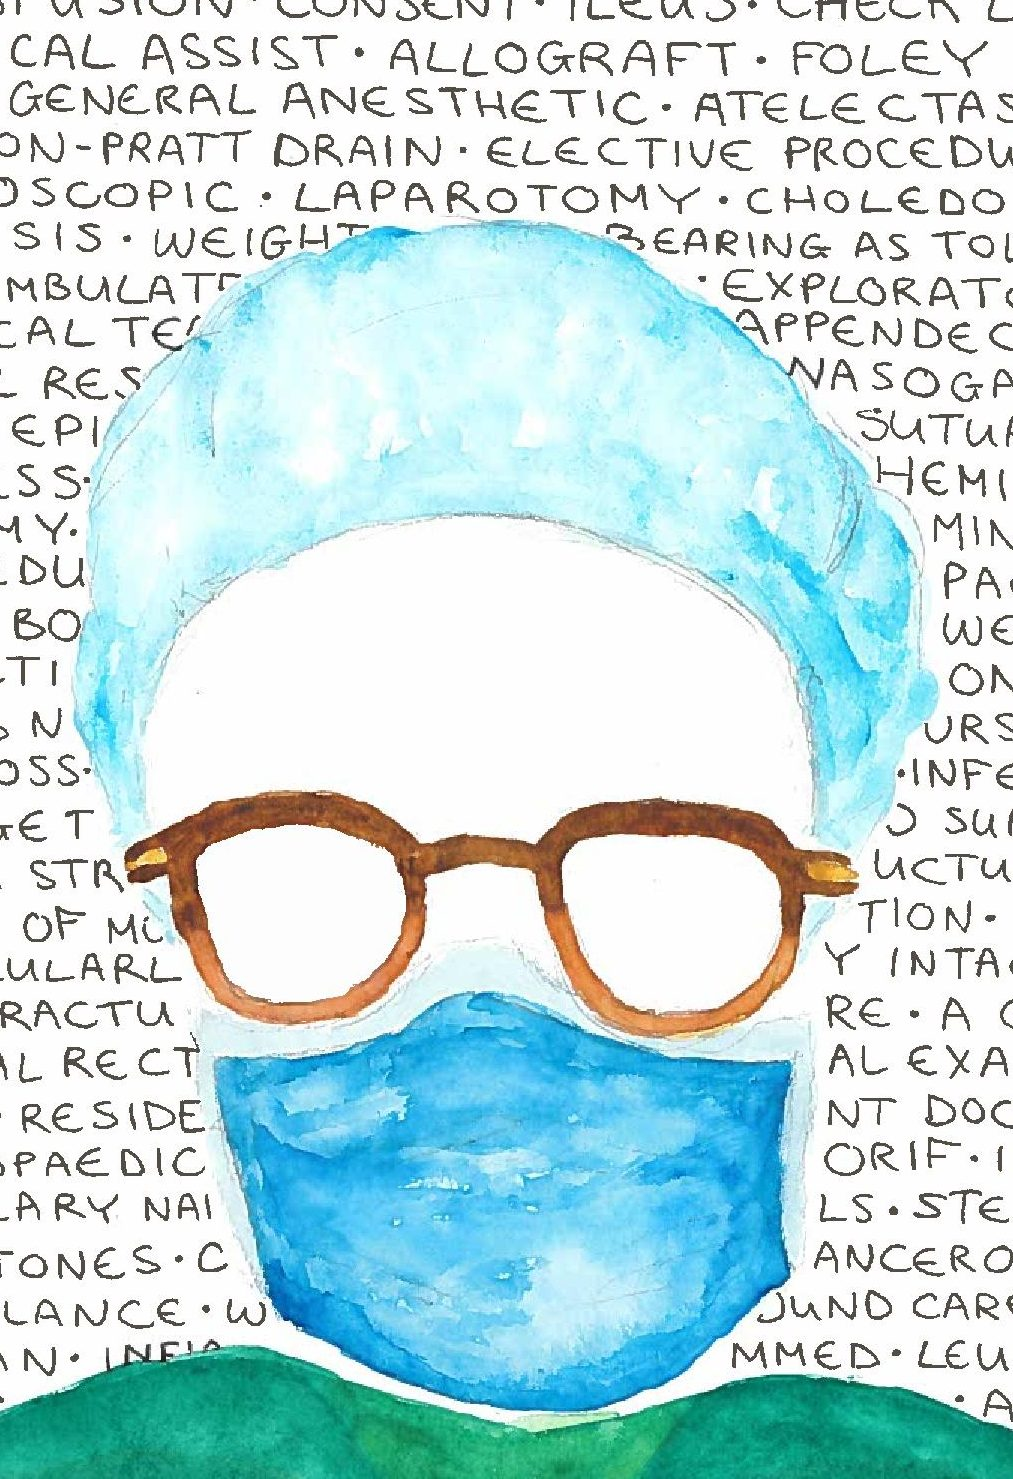 An illustration of a surgeon's face - eyes and face are white and left blank on the page. Surgical words in the background.